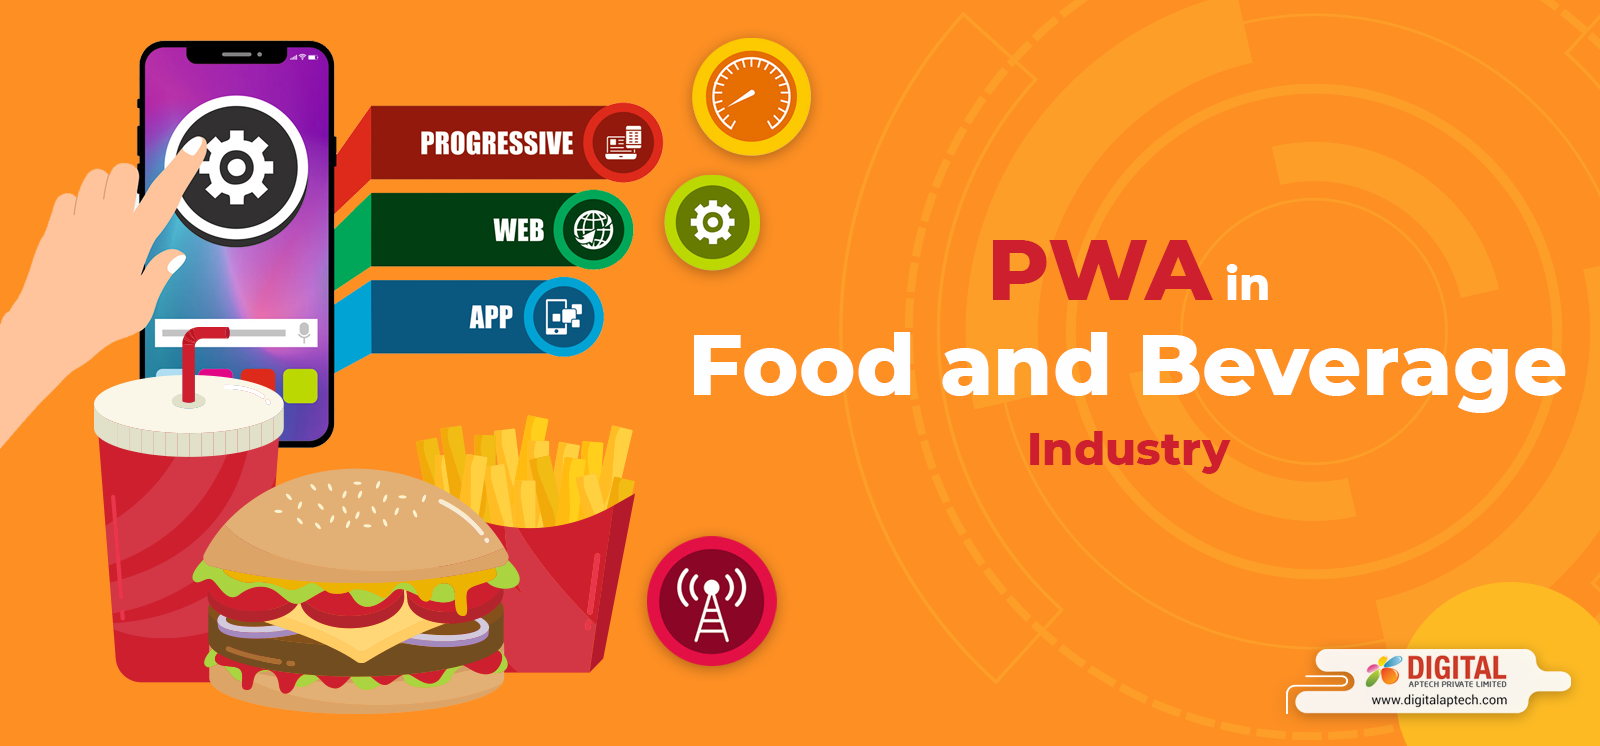 Why PWA is the Future of the Food & Beverage Industry?